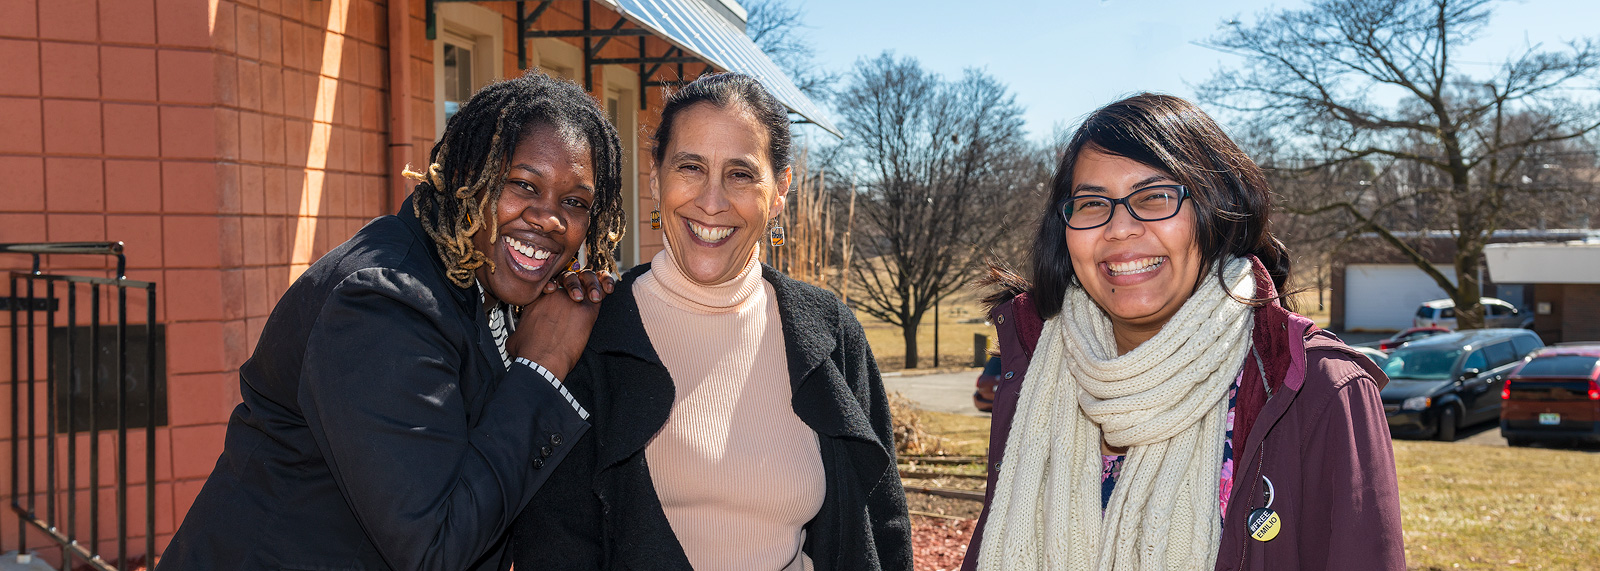 Desirae Simmons, Julie Quiroz, and Maria Ibarra-Frayre of Untold Stories of Liberation and Love <span class=&apos;image-credits&apos;>Doug Coombe</span>